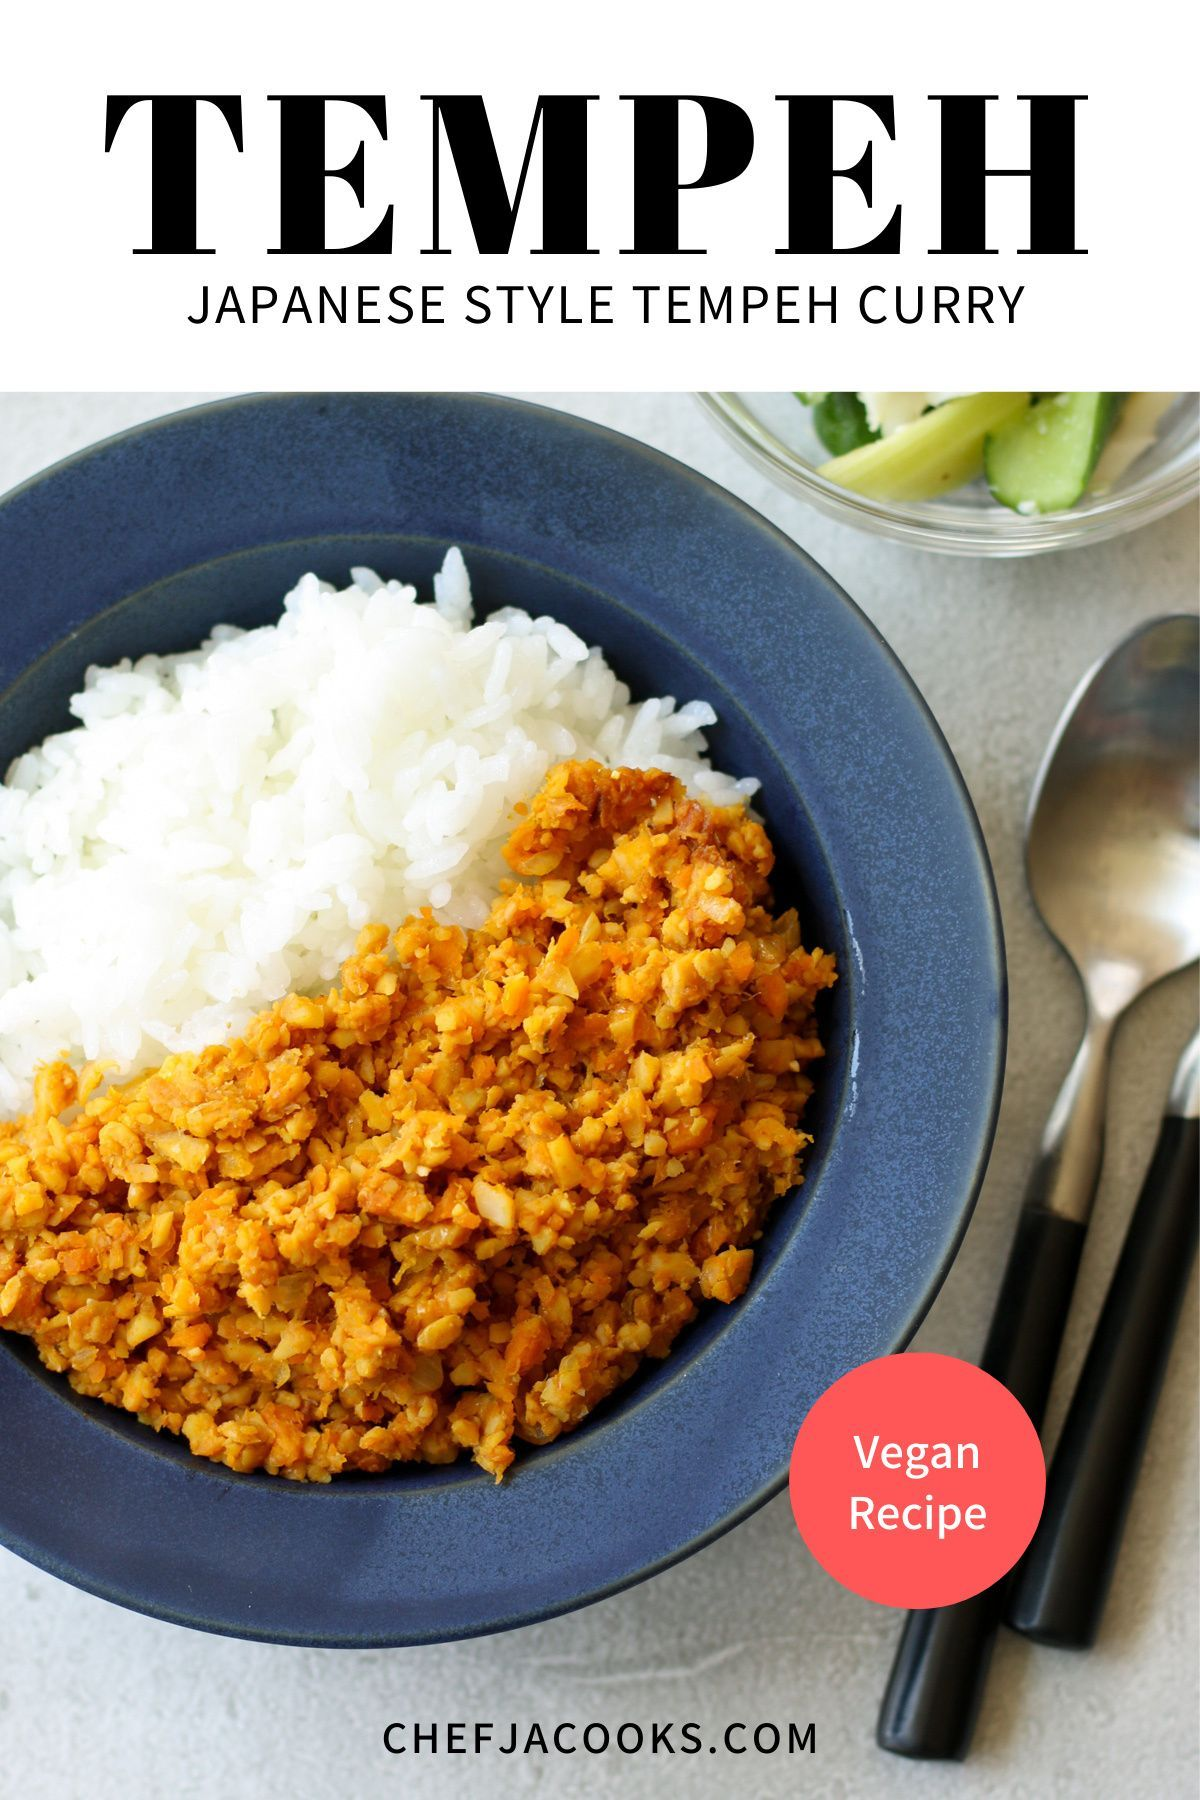 Japanese Style Tempeh Dry Curry Chef Ja Cooks Recipe In 2020 Healthy Japanese Recipes Asian Vegetables Recipes